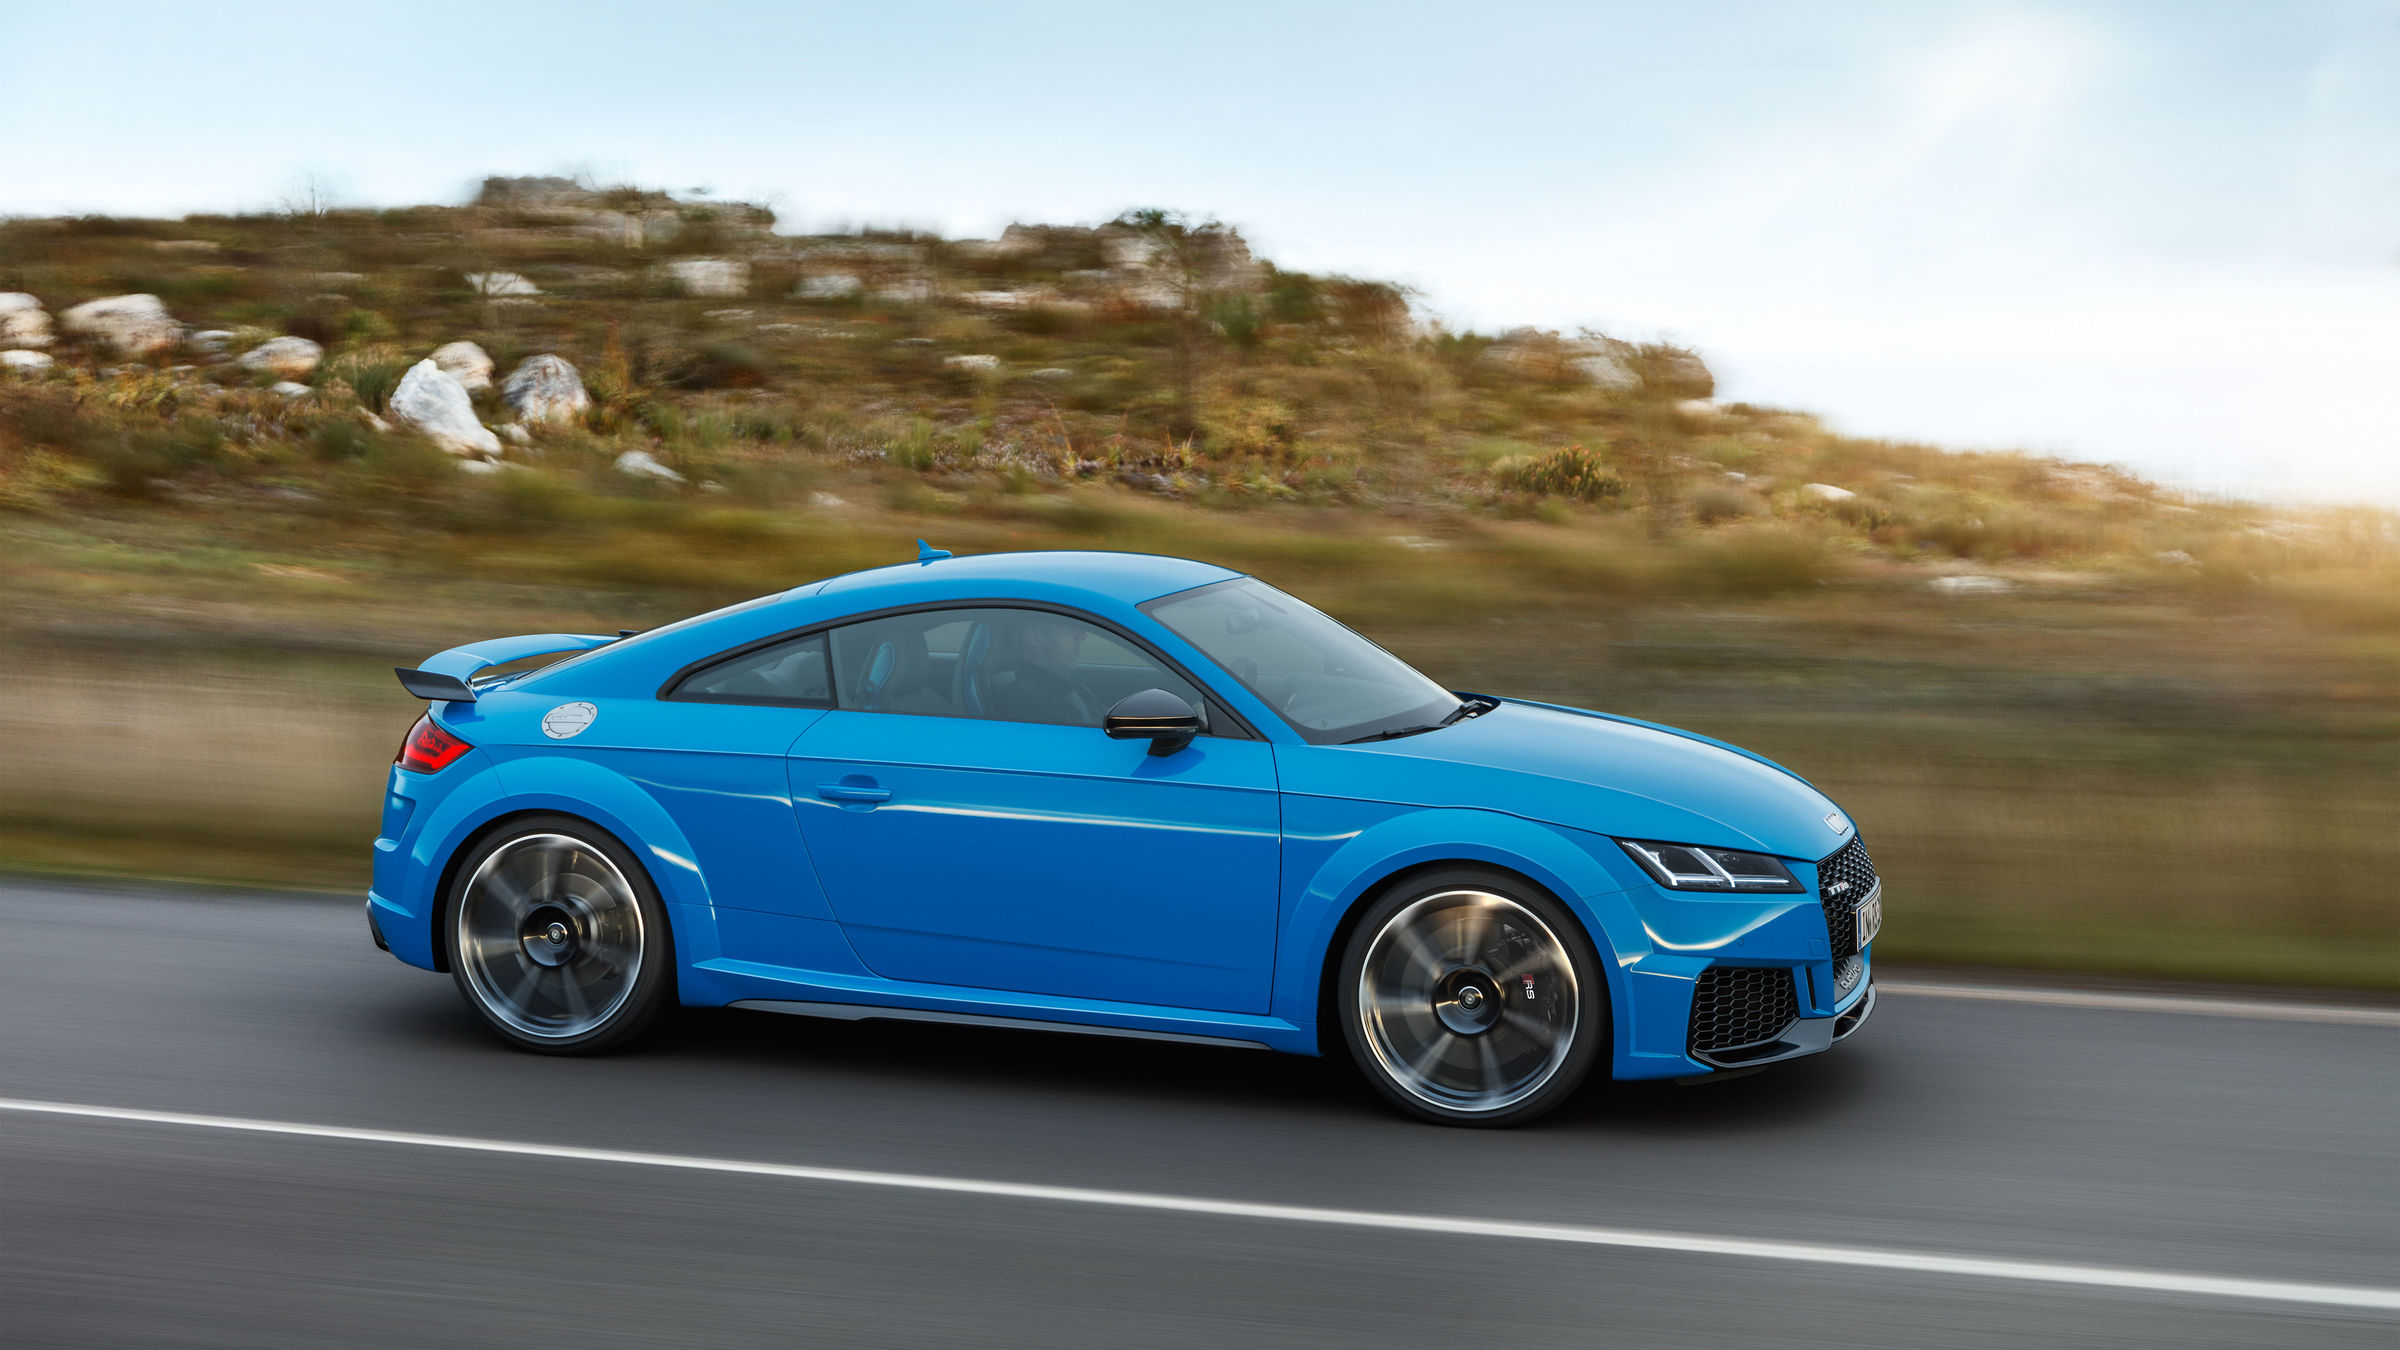 The new Audi TT RS ready for launch